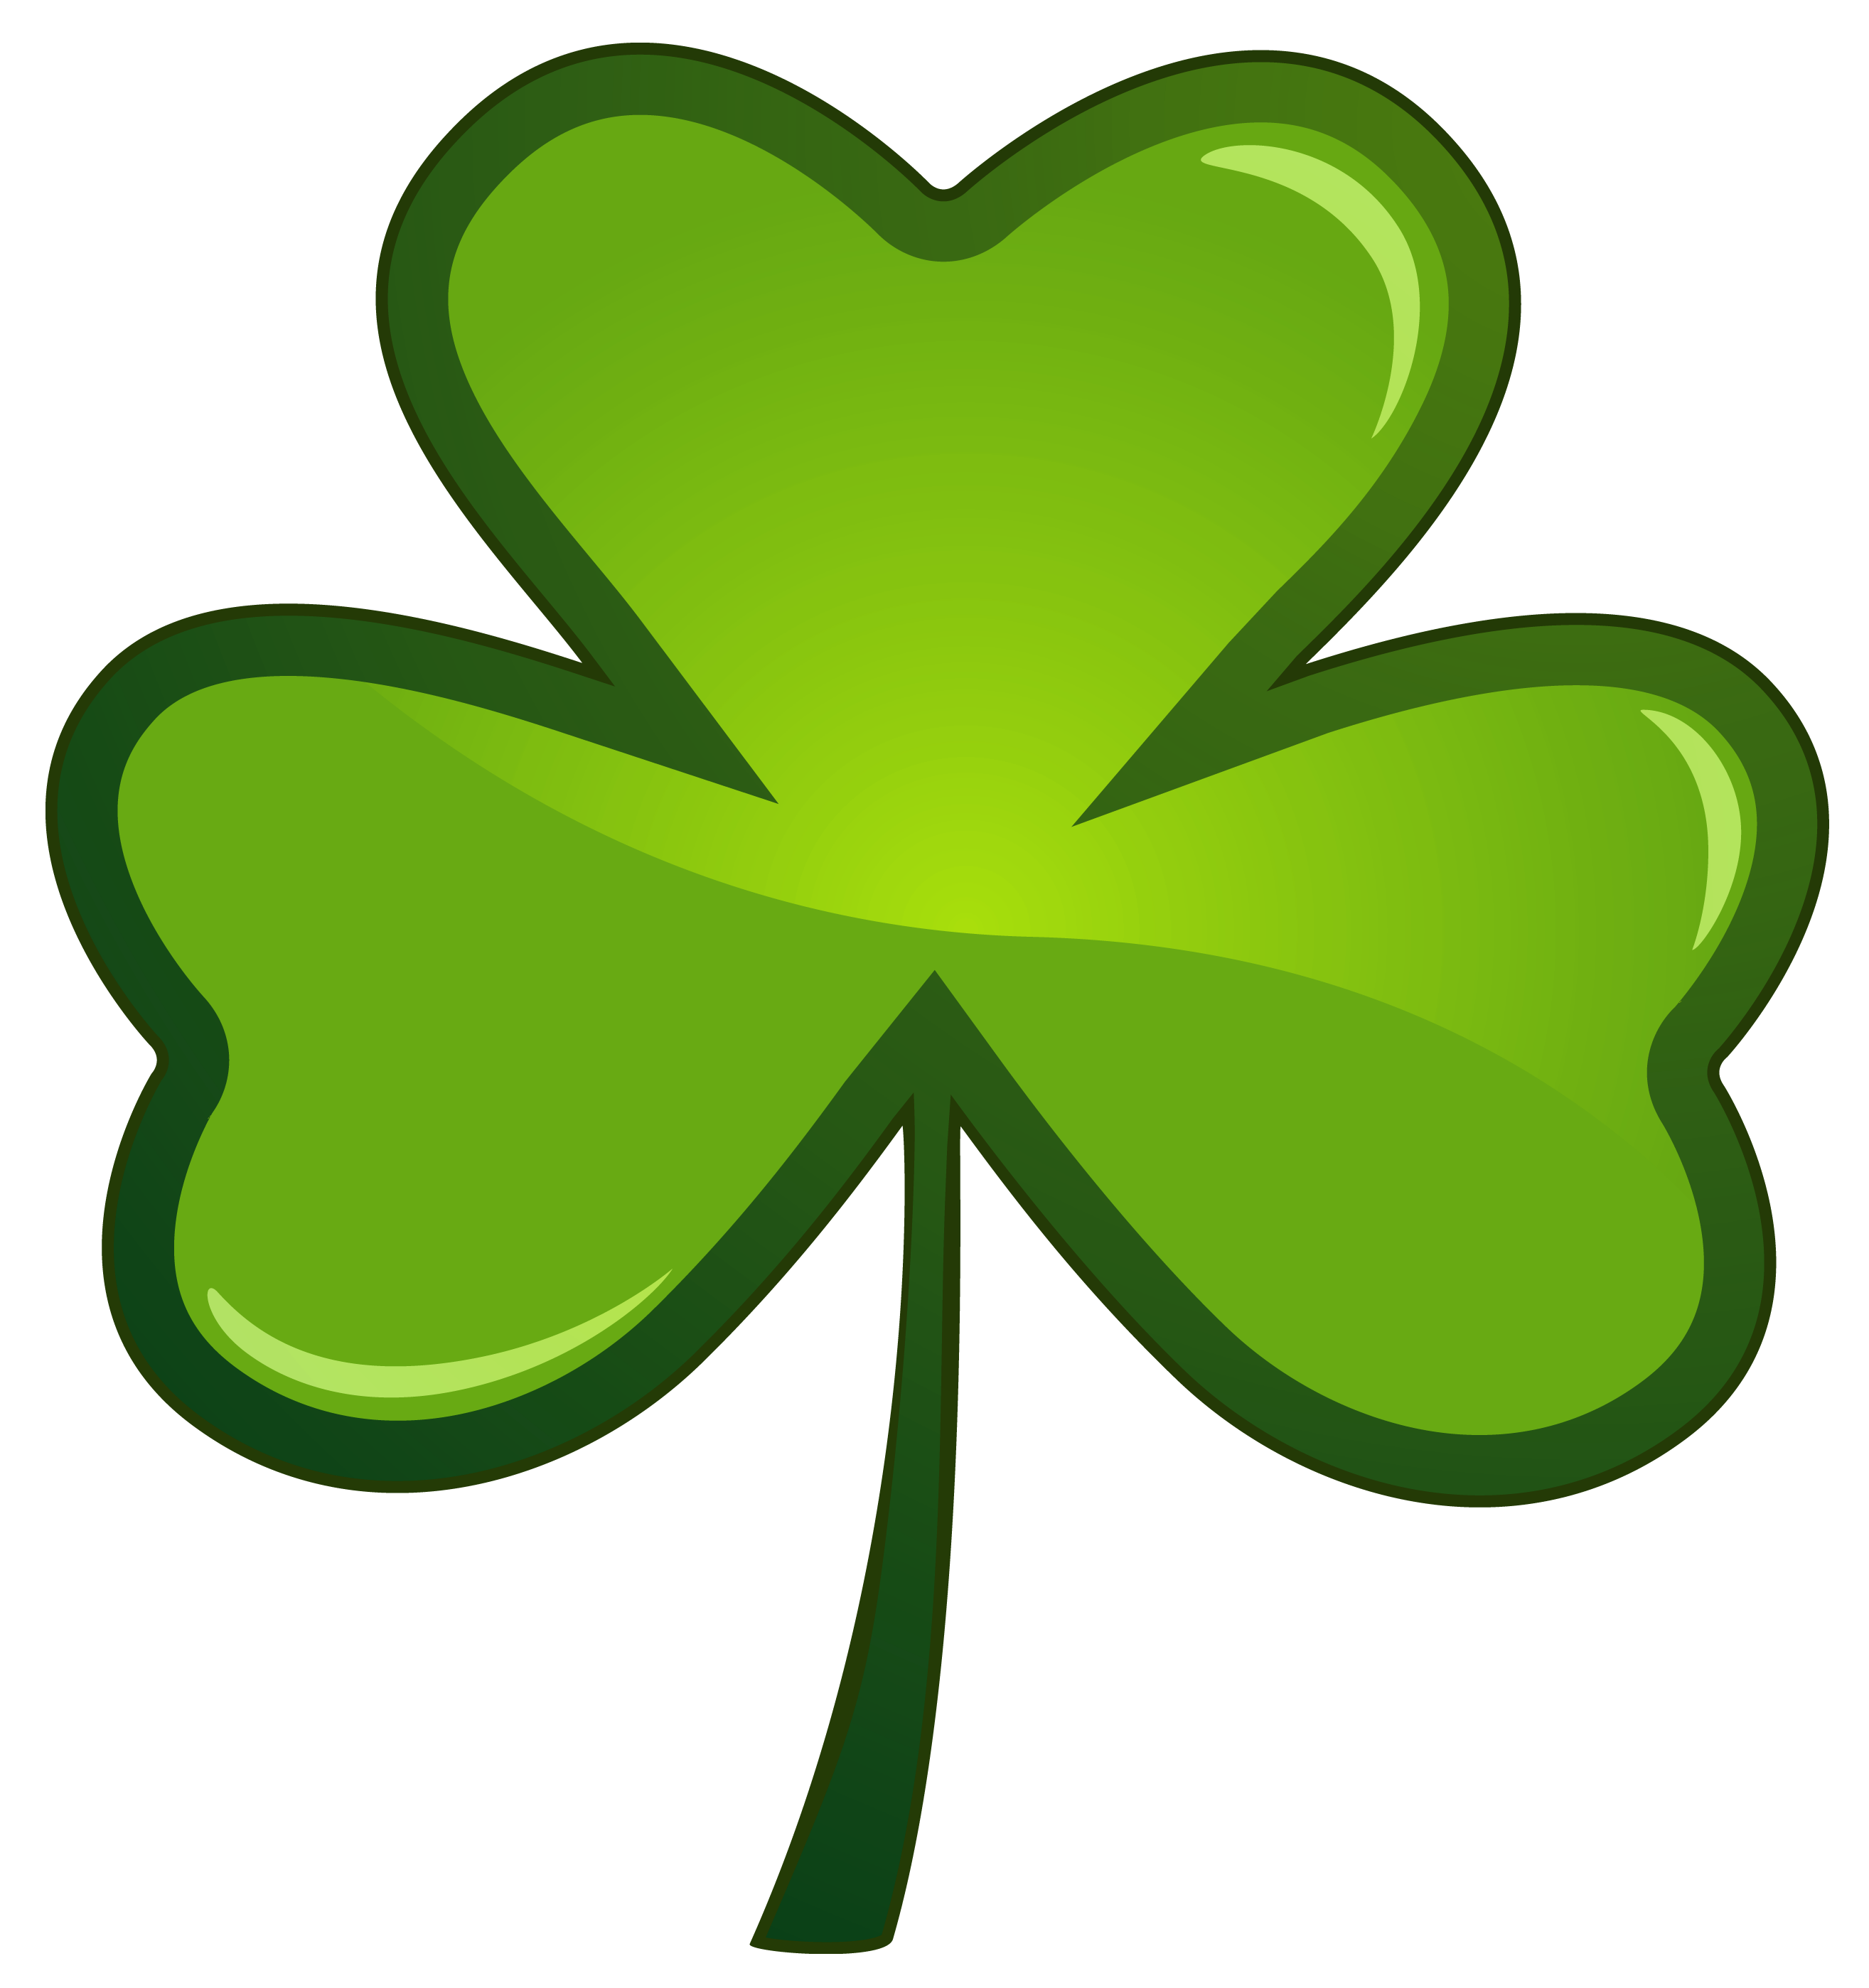 Free Shamrock Png No Background - St Patricks Day Shamrock PNG Clipart Picture | Gallery ...